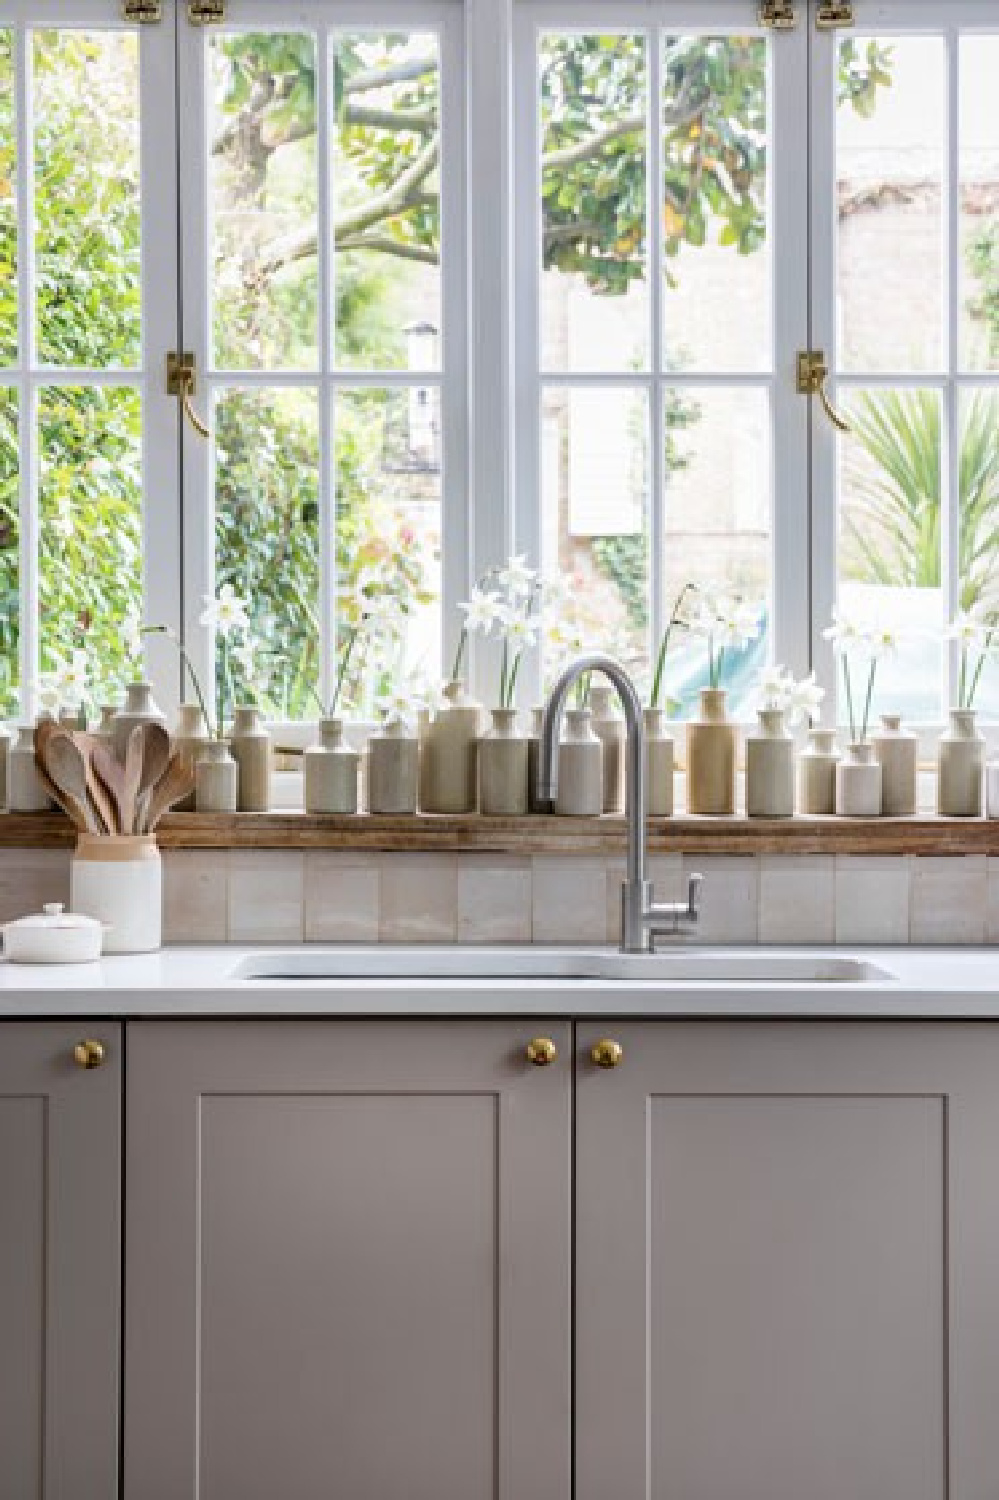 Modern farmhouse classic kitchen with grey cabinets, zellige tile backsplash, and a collection of putty colored stone English pottery lined up on the window sill. Interior Design by Imperfect Interiors. Photo: Chris Snook. #kitchendesign #modernfarmhouse #englishpottery #vintagestyle #slowliving #greycabinets